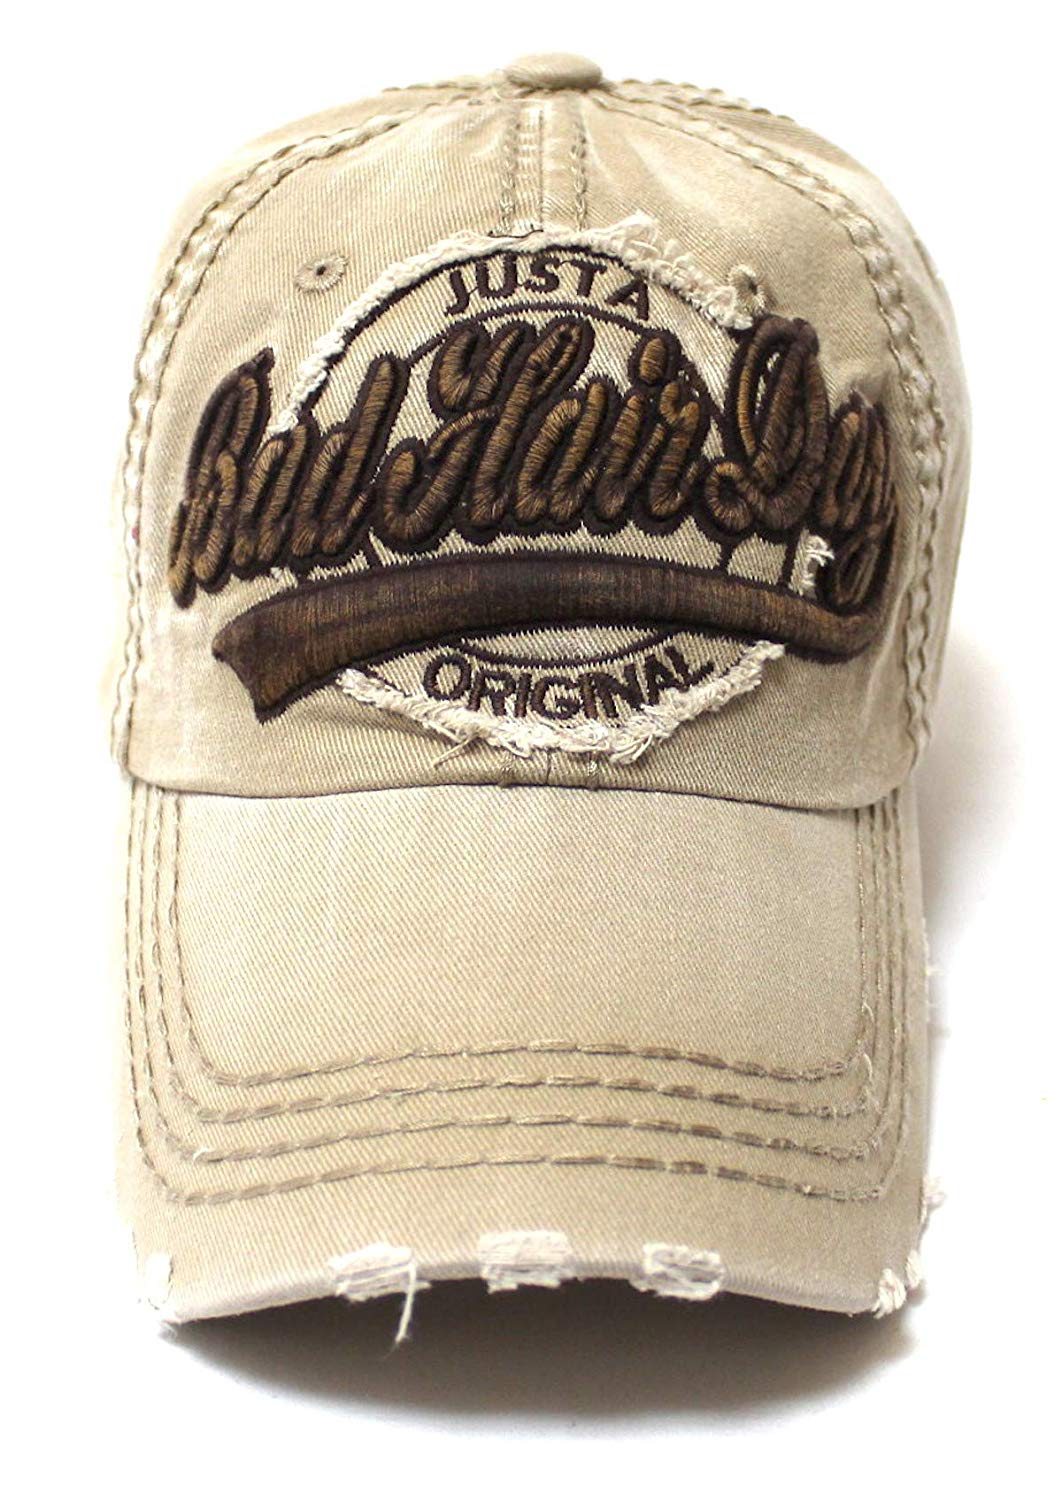 Classic Low Profile Bad Hair Day Original Ball Cap, Vintage Khaki - Caps 'N Vintage